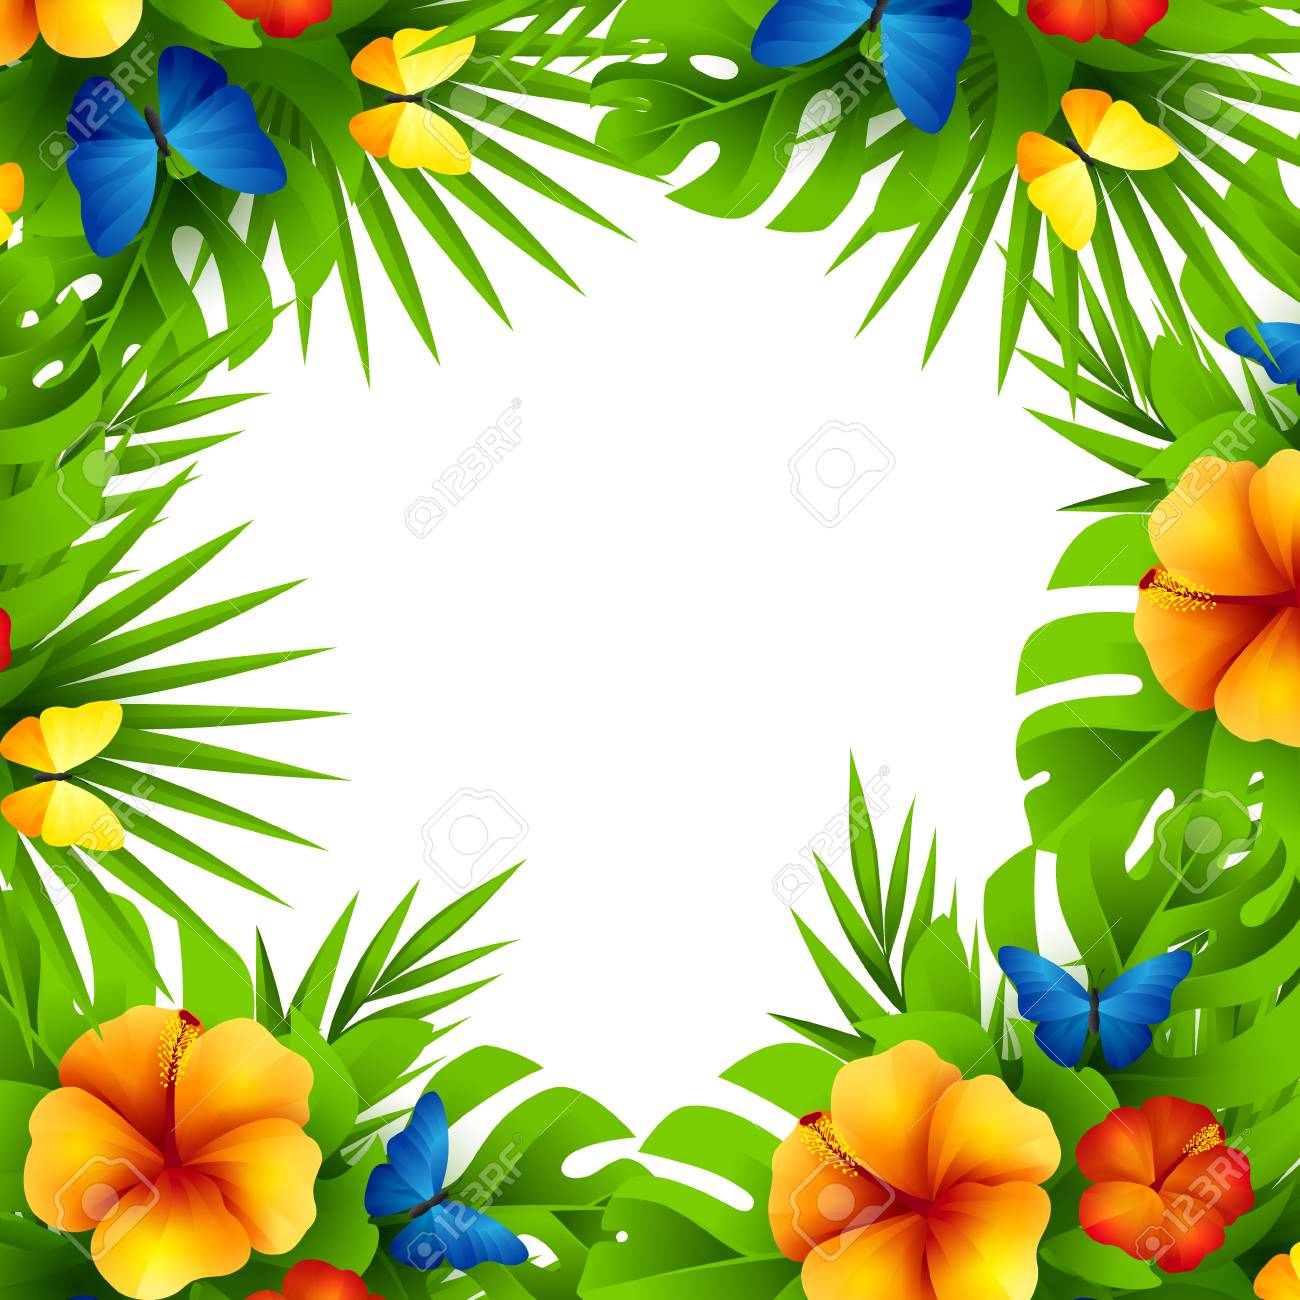 Summer tropical hawaiian background with jungle palm tree leaves, exotic flowers and rainbow butterflies. - 62916743